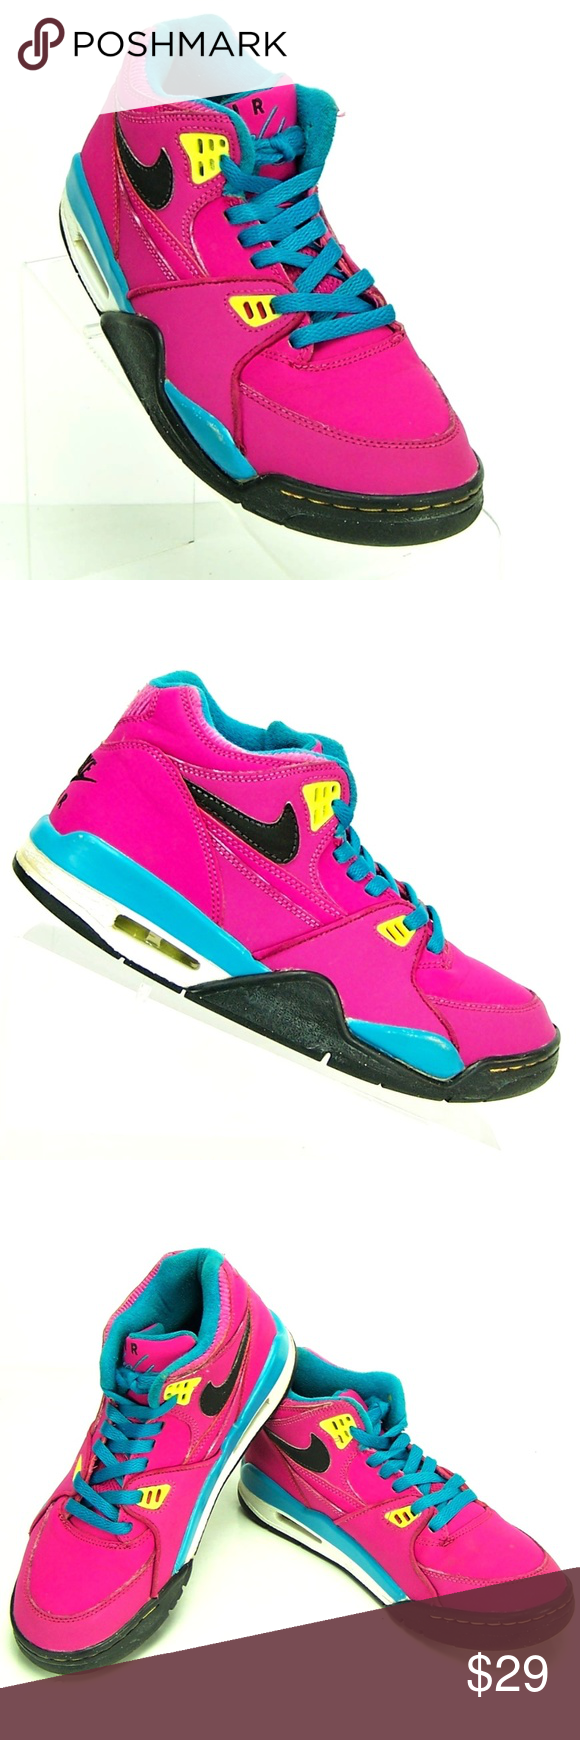 info for bf8a6 5d0ba ... promo code for nike air flight 89 fusion pink blue yellow nike air  flight 89 fusion